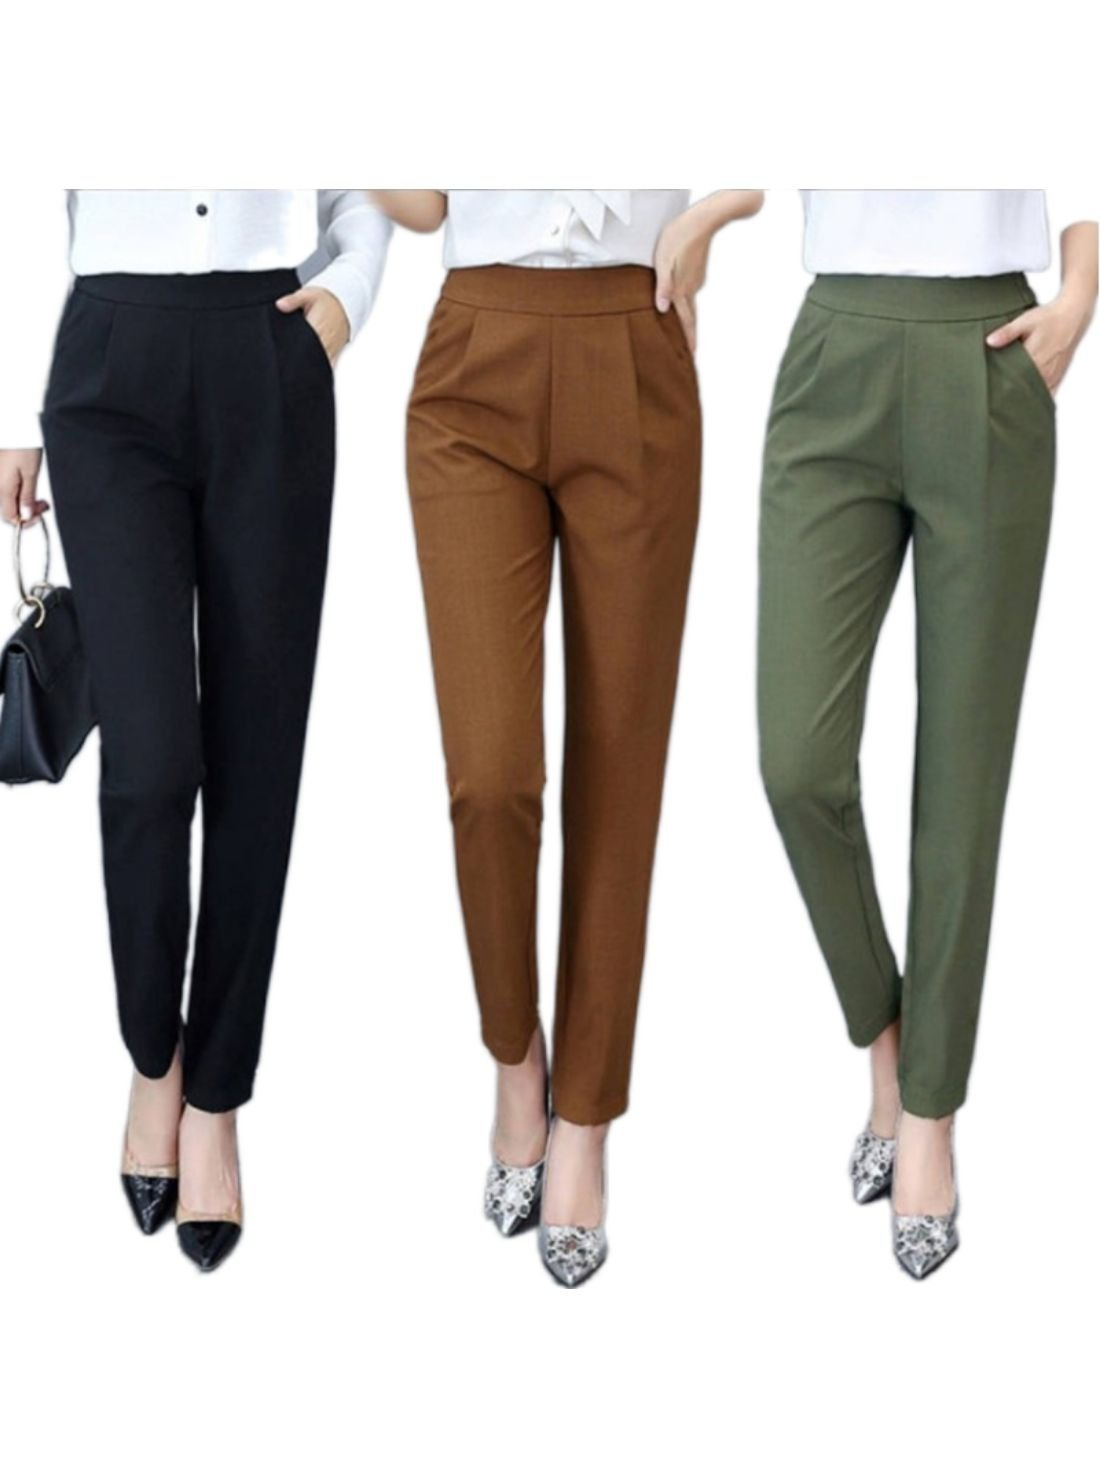 Hot sale fashion high waist straight leg trousers office ladies suit pants casual trousers